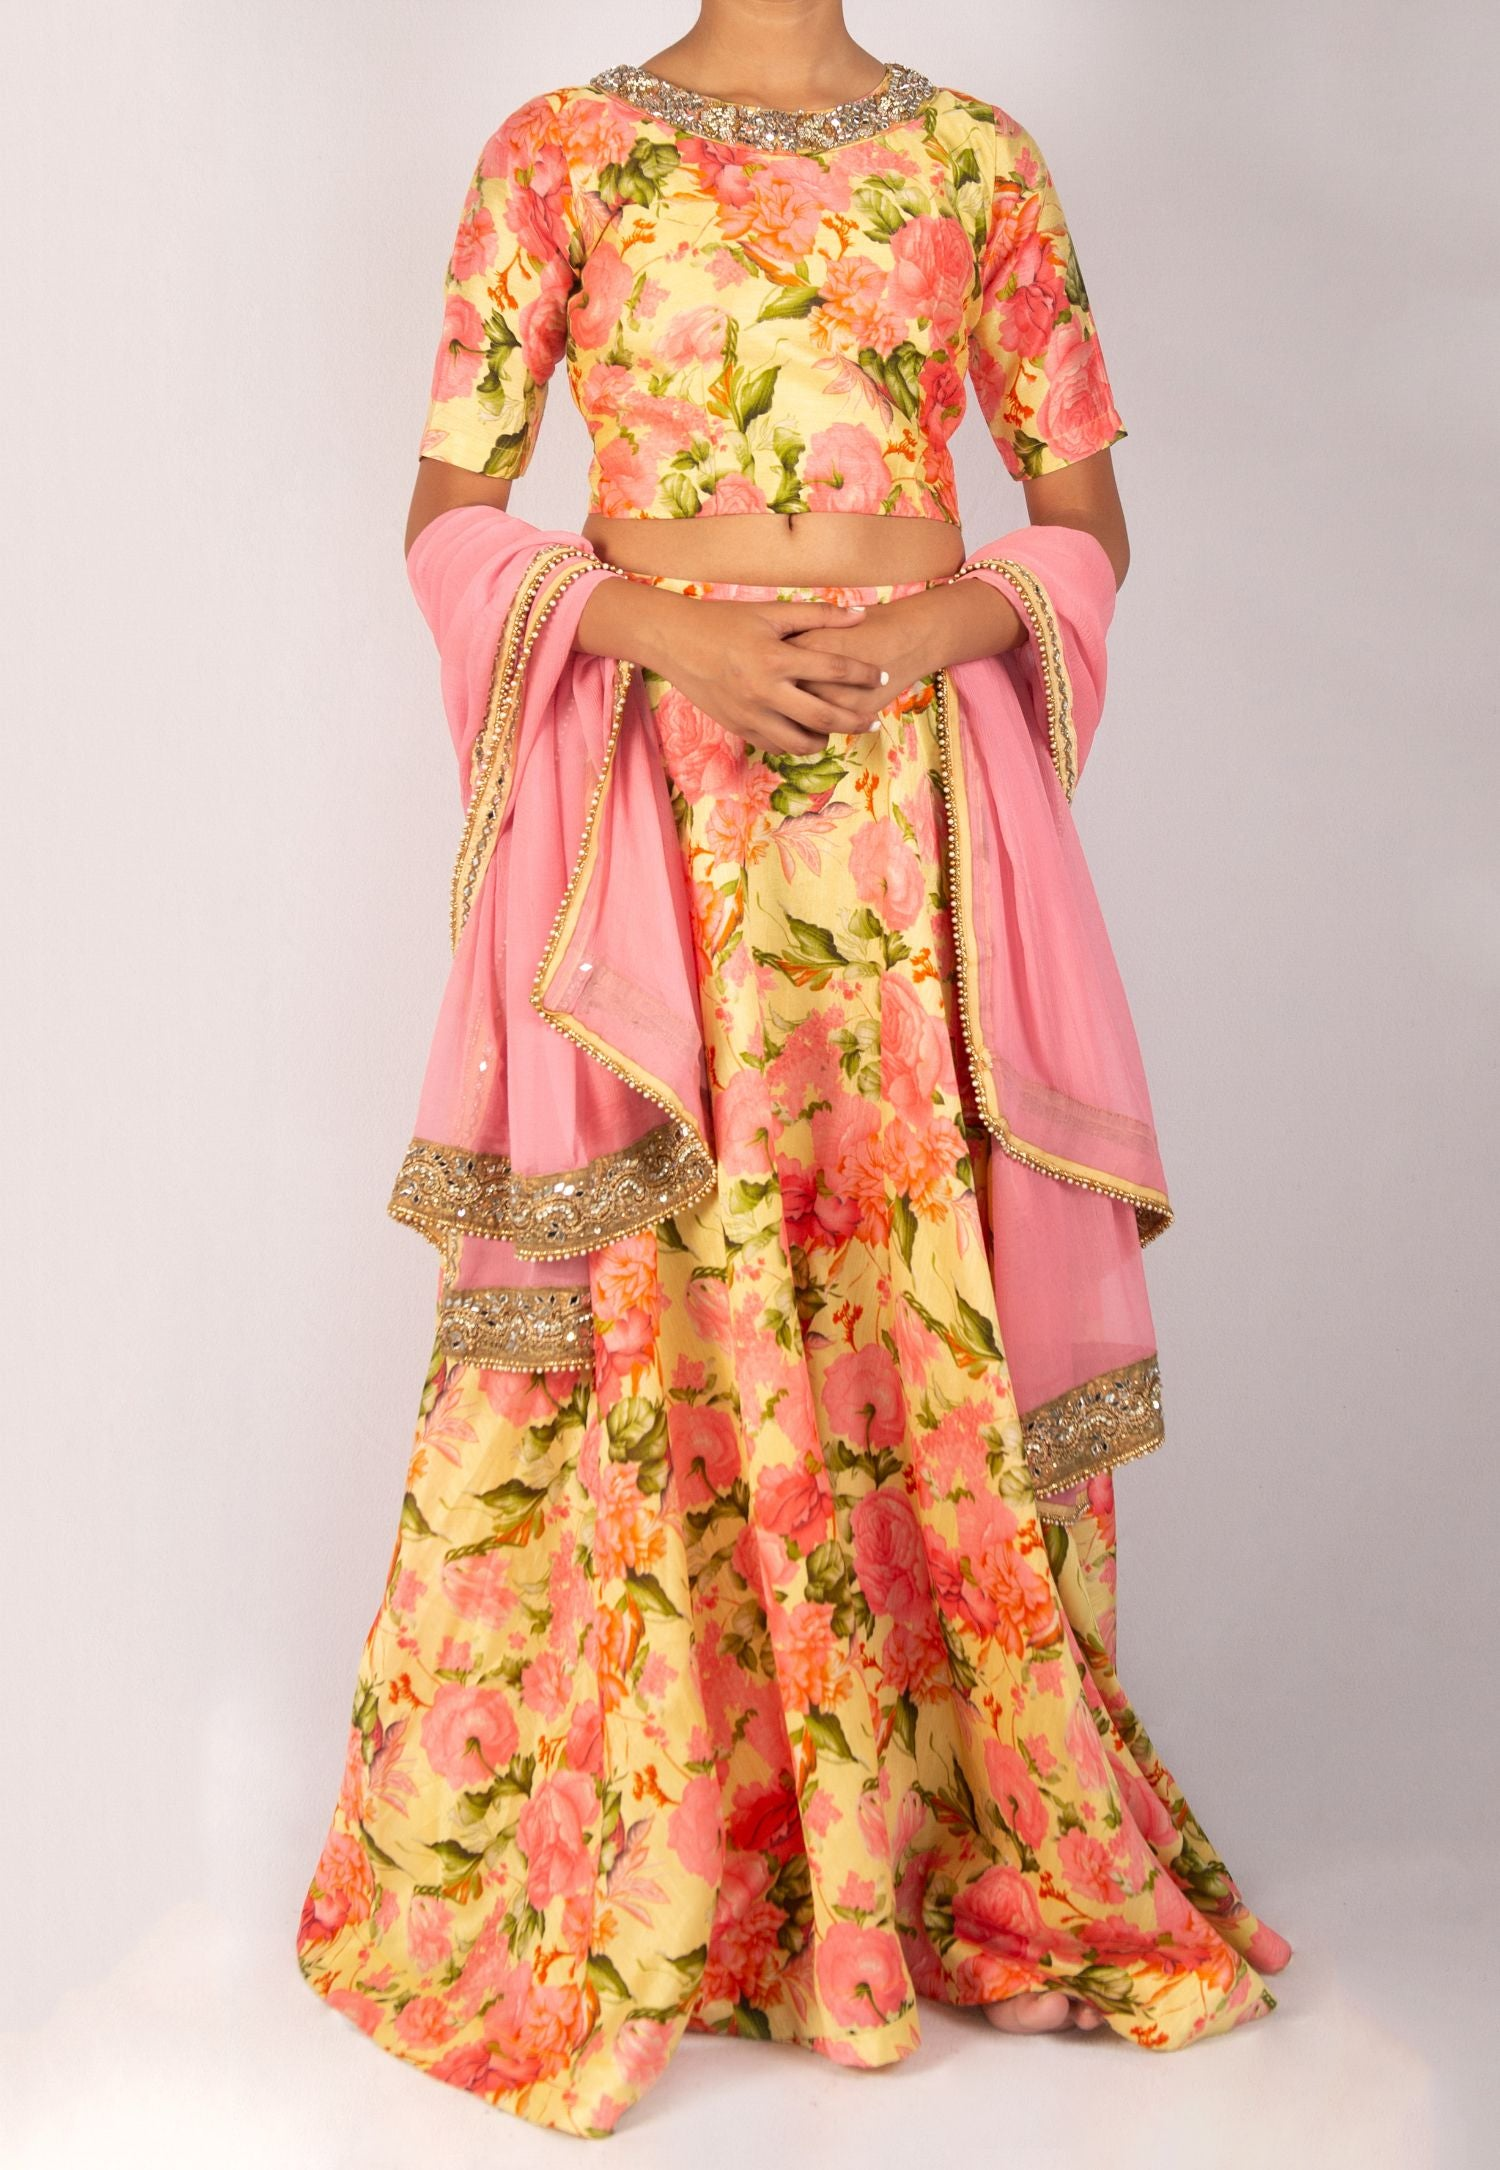 BEAUTIFUL FLORAL YELLOW AND PINK LEHENGA WITH MIRROR WORK AND SEQUIN DETAIL